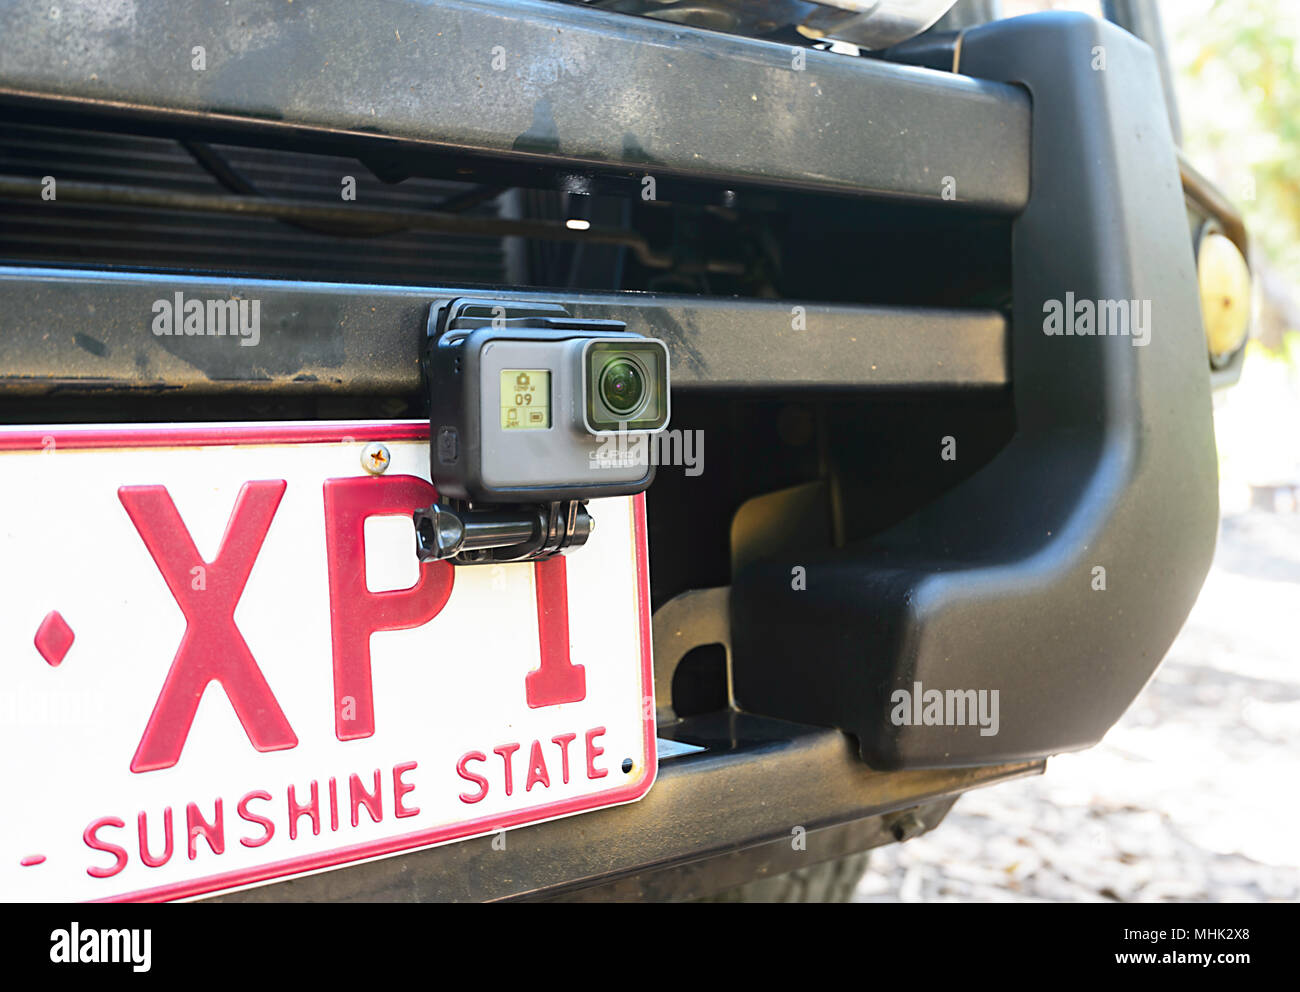 A GoPro Hero 6 camera attached to the front of a car for filming - Stock Image